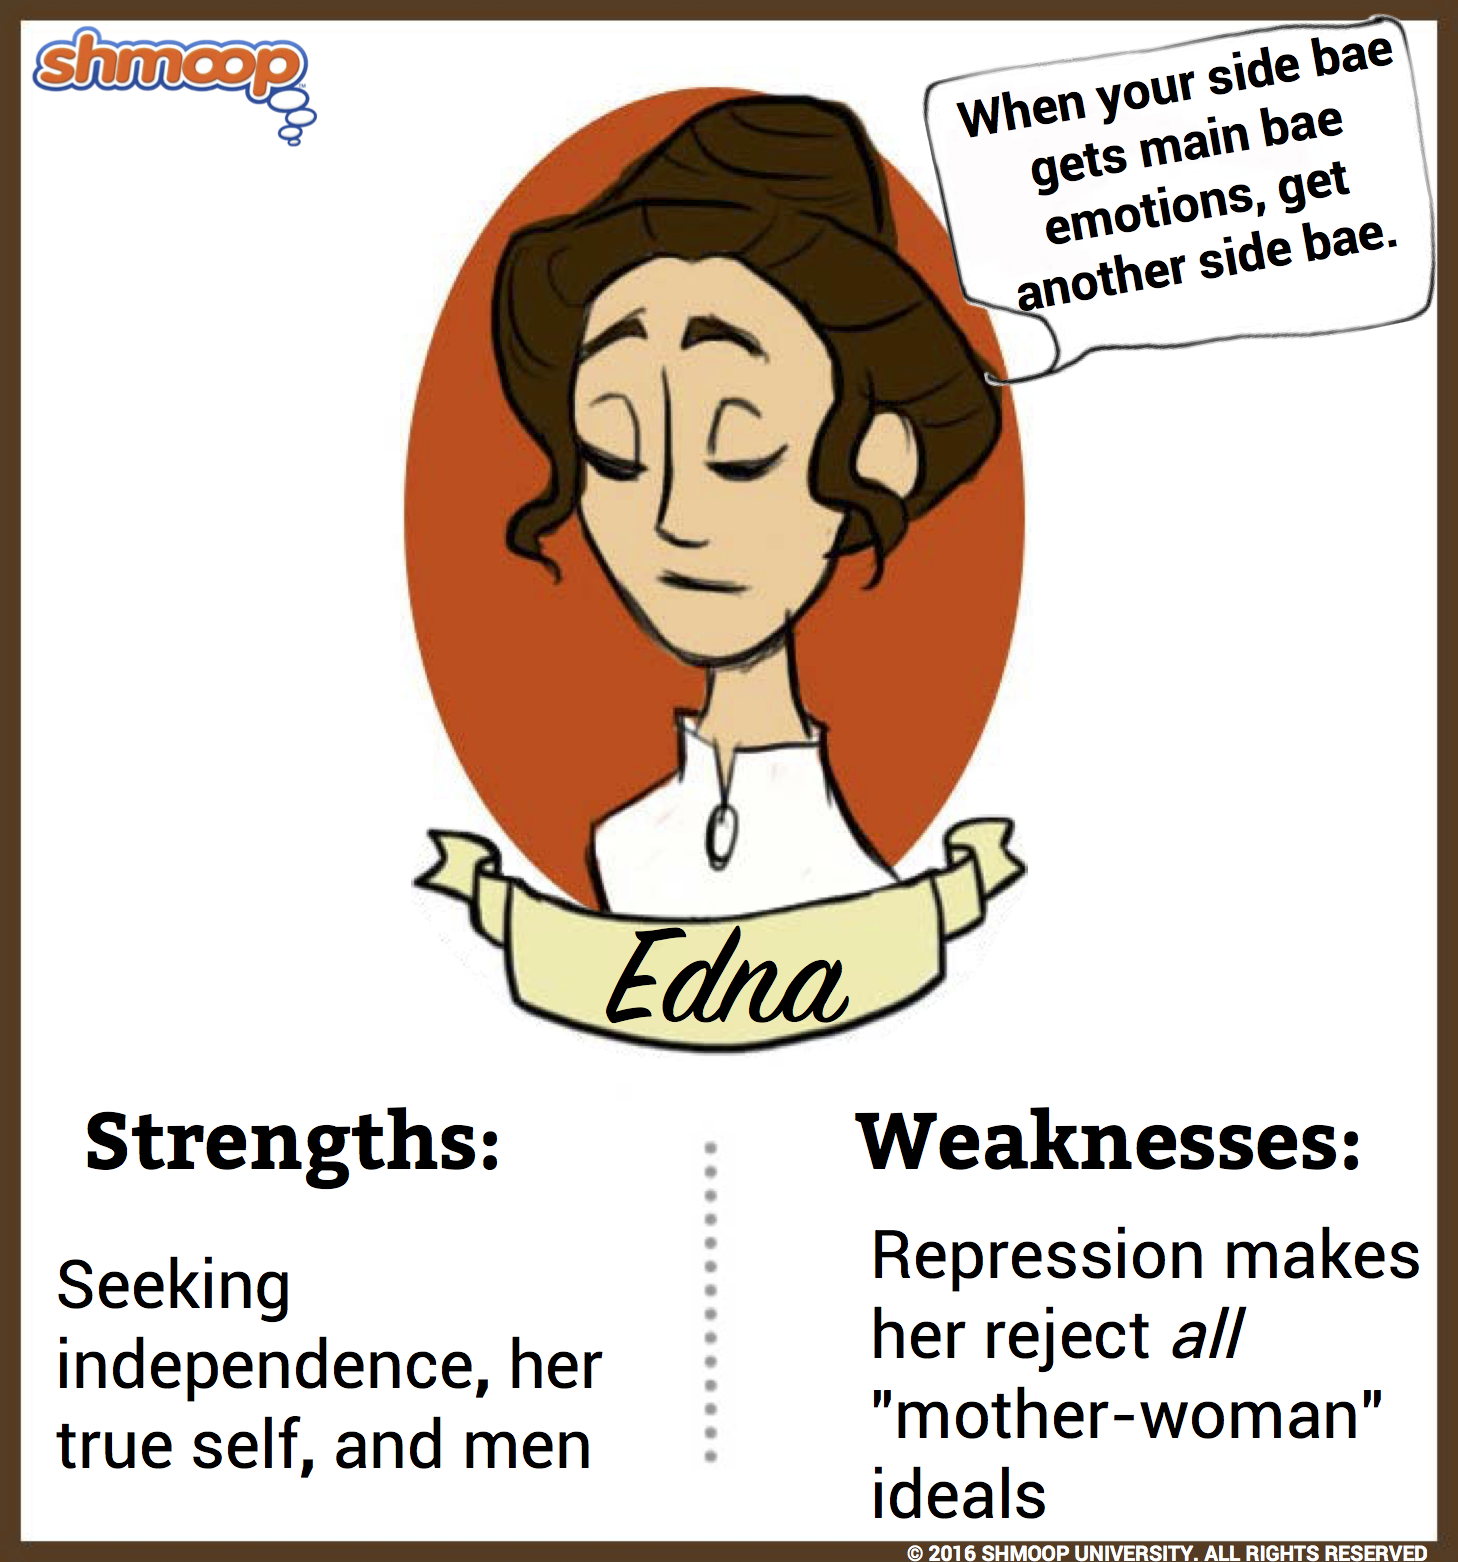 a character review of edna pontellier in the awakening by kate chopin All reviews hot new books book unstable is the awakening by kate chopin awakening the main character edna pontellier struggles to fit in and.